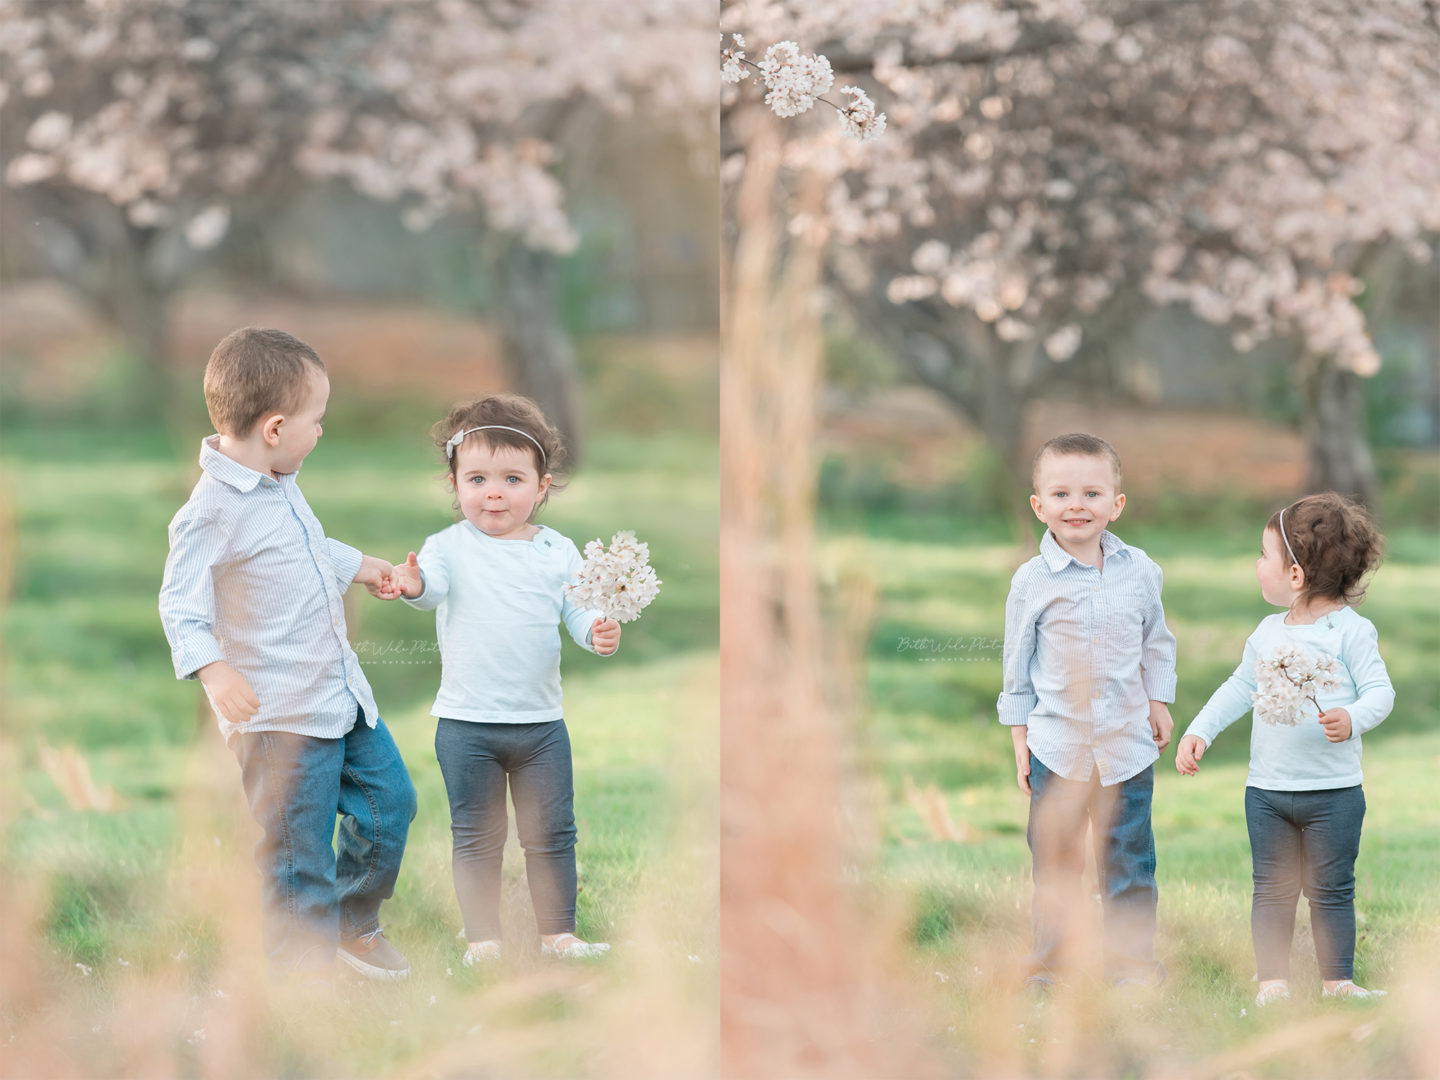 spring family of 4 photos {concord baby photographer}